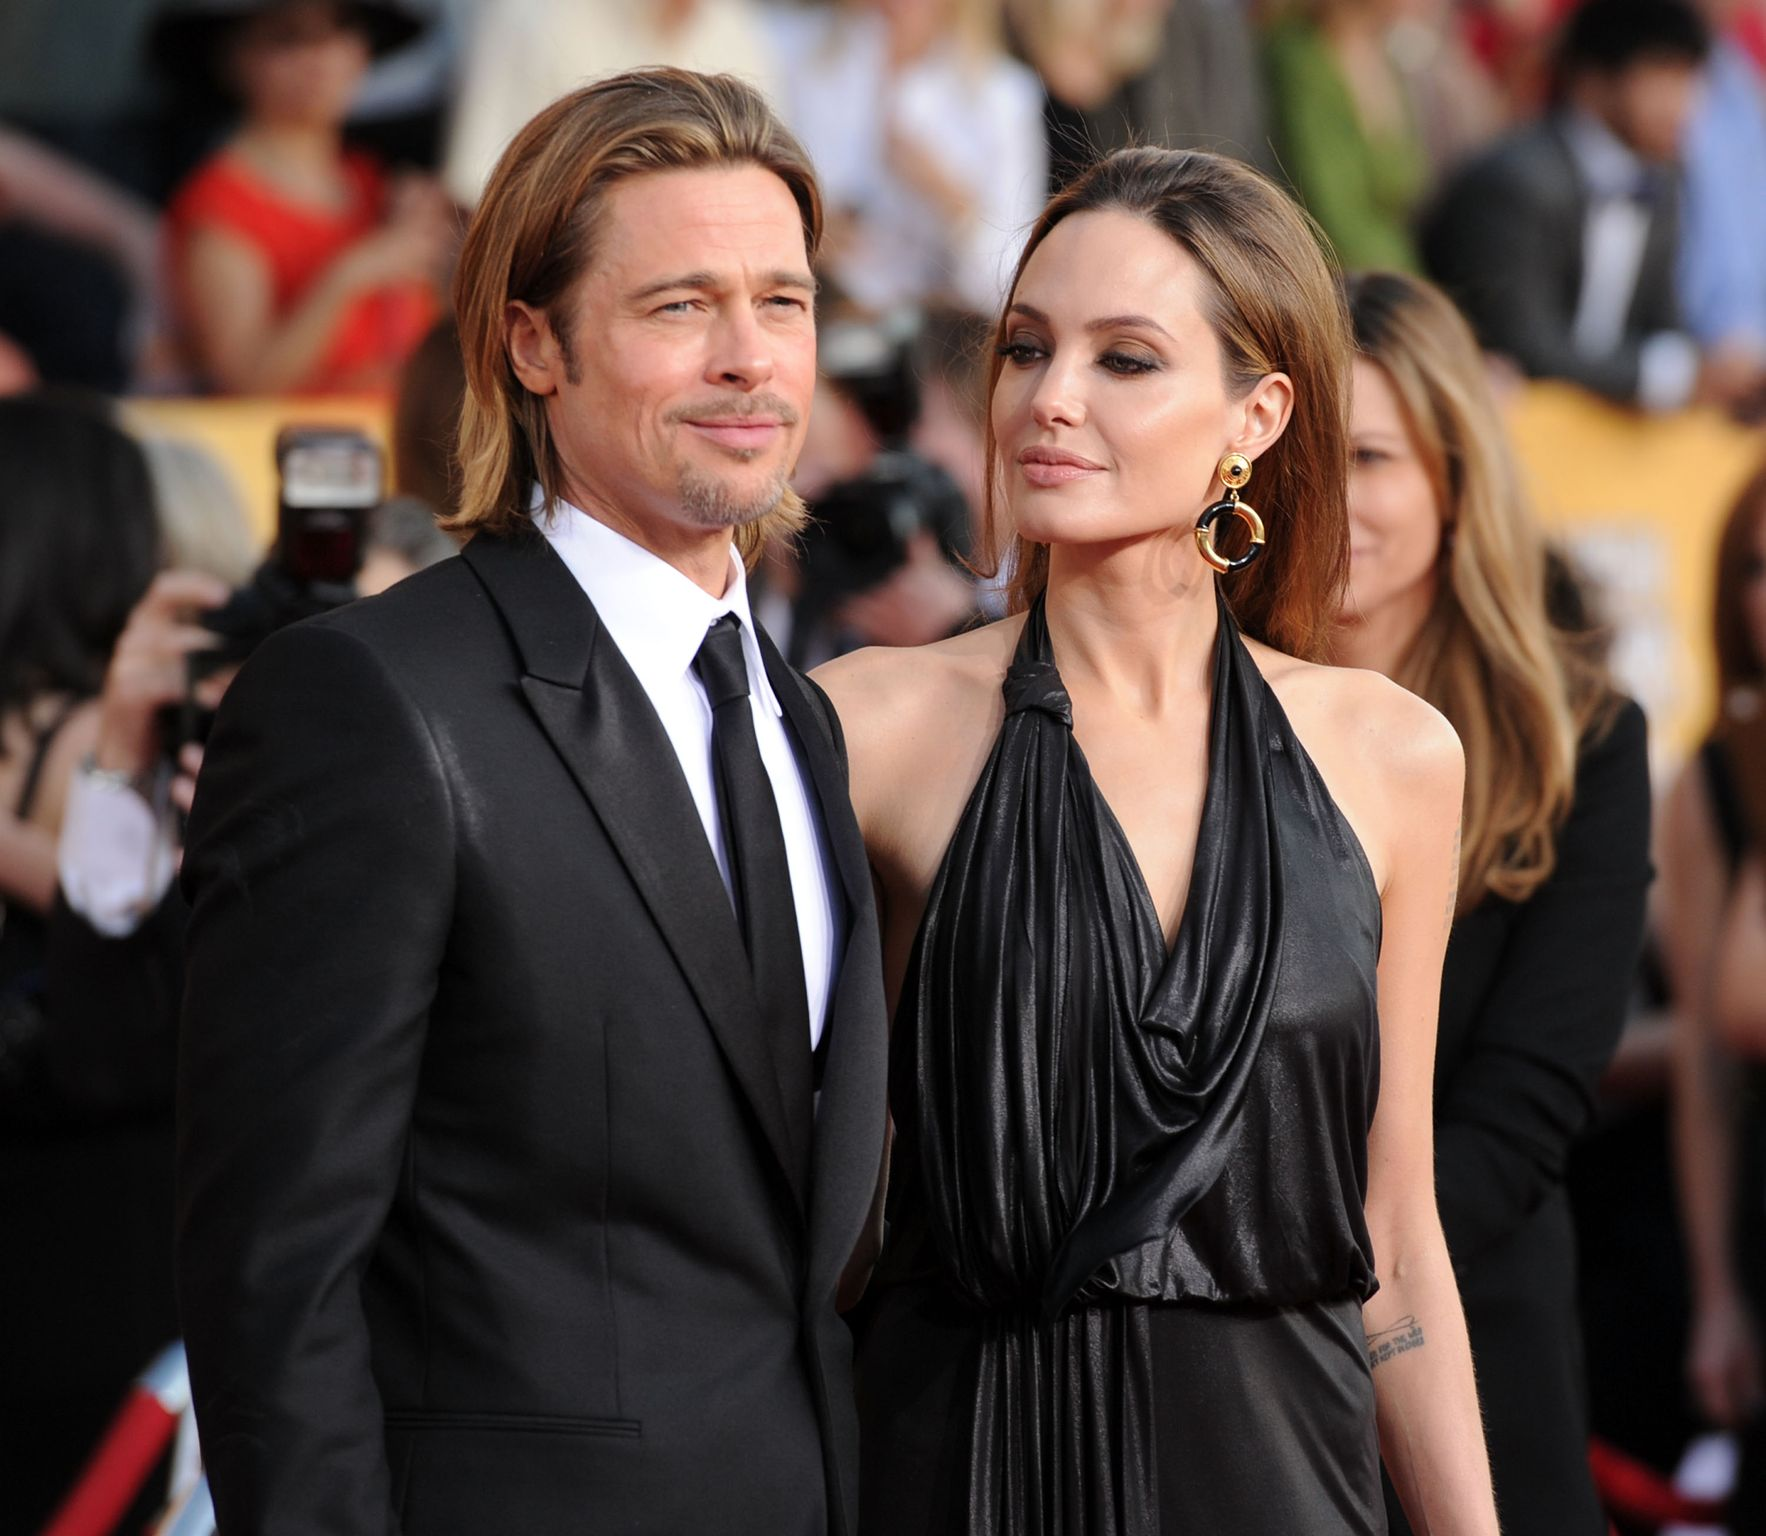 Brad's relationship with Angelina Jolie has been the longest one he's had so far / Getty Images